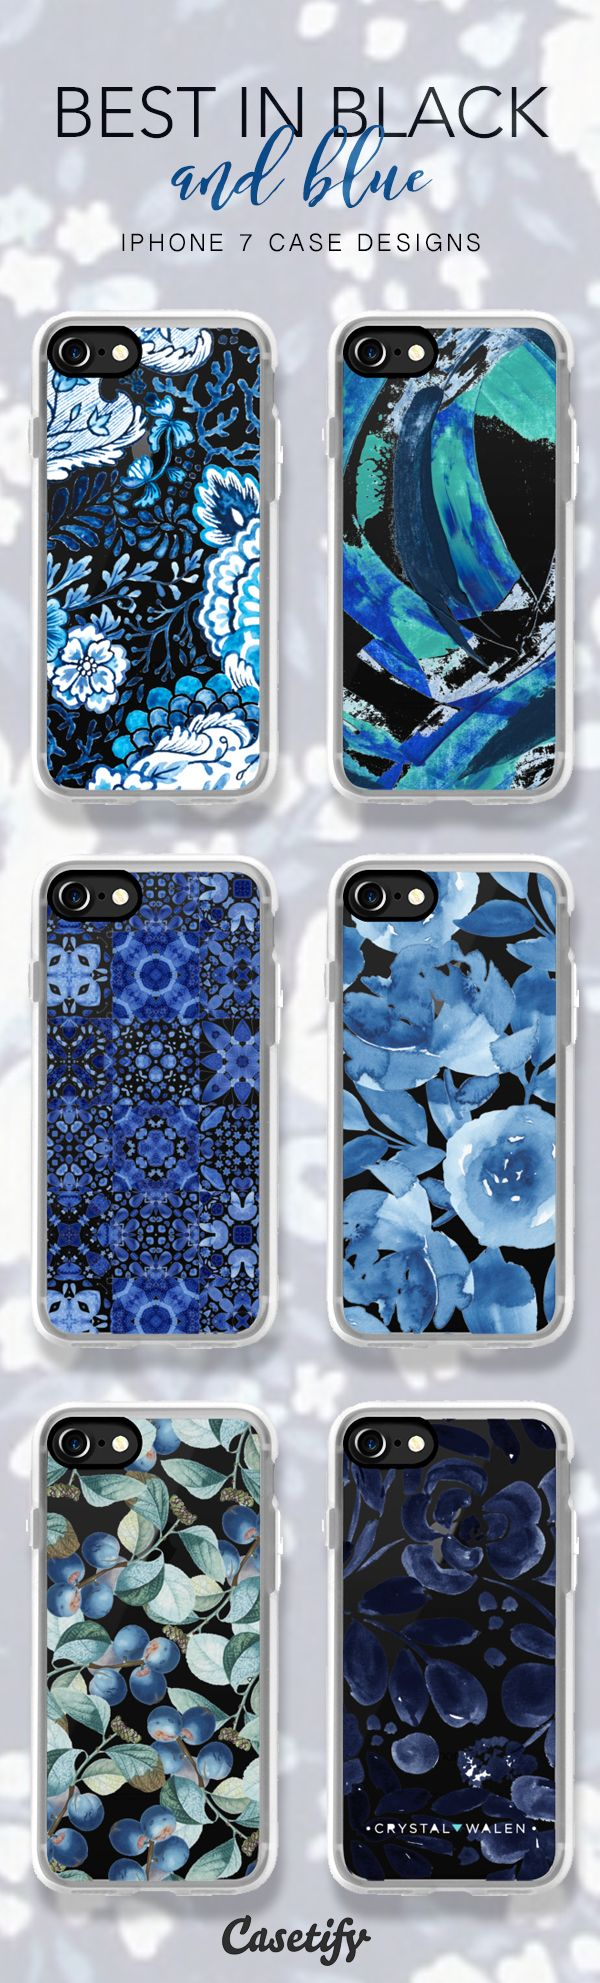 iphone 7 phone cases e